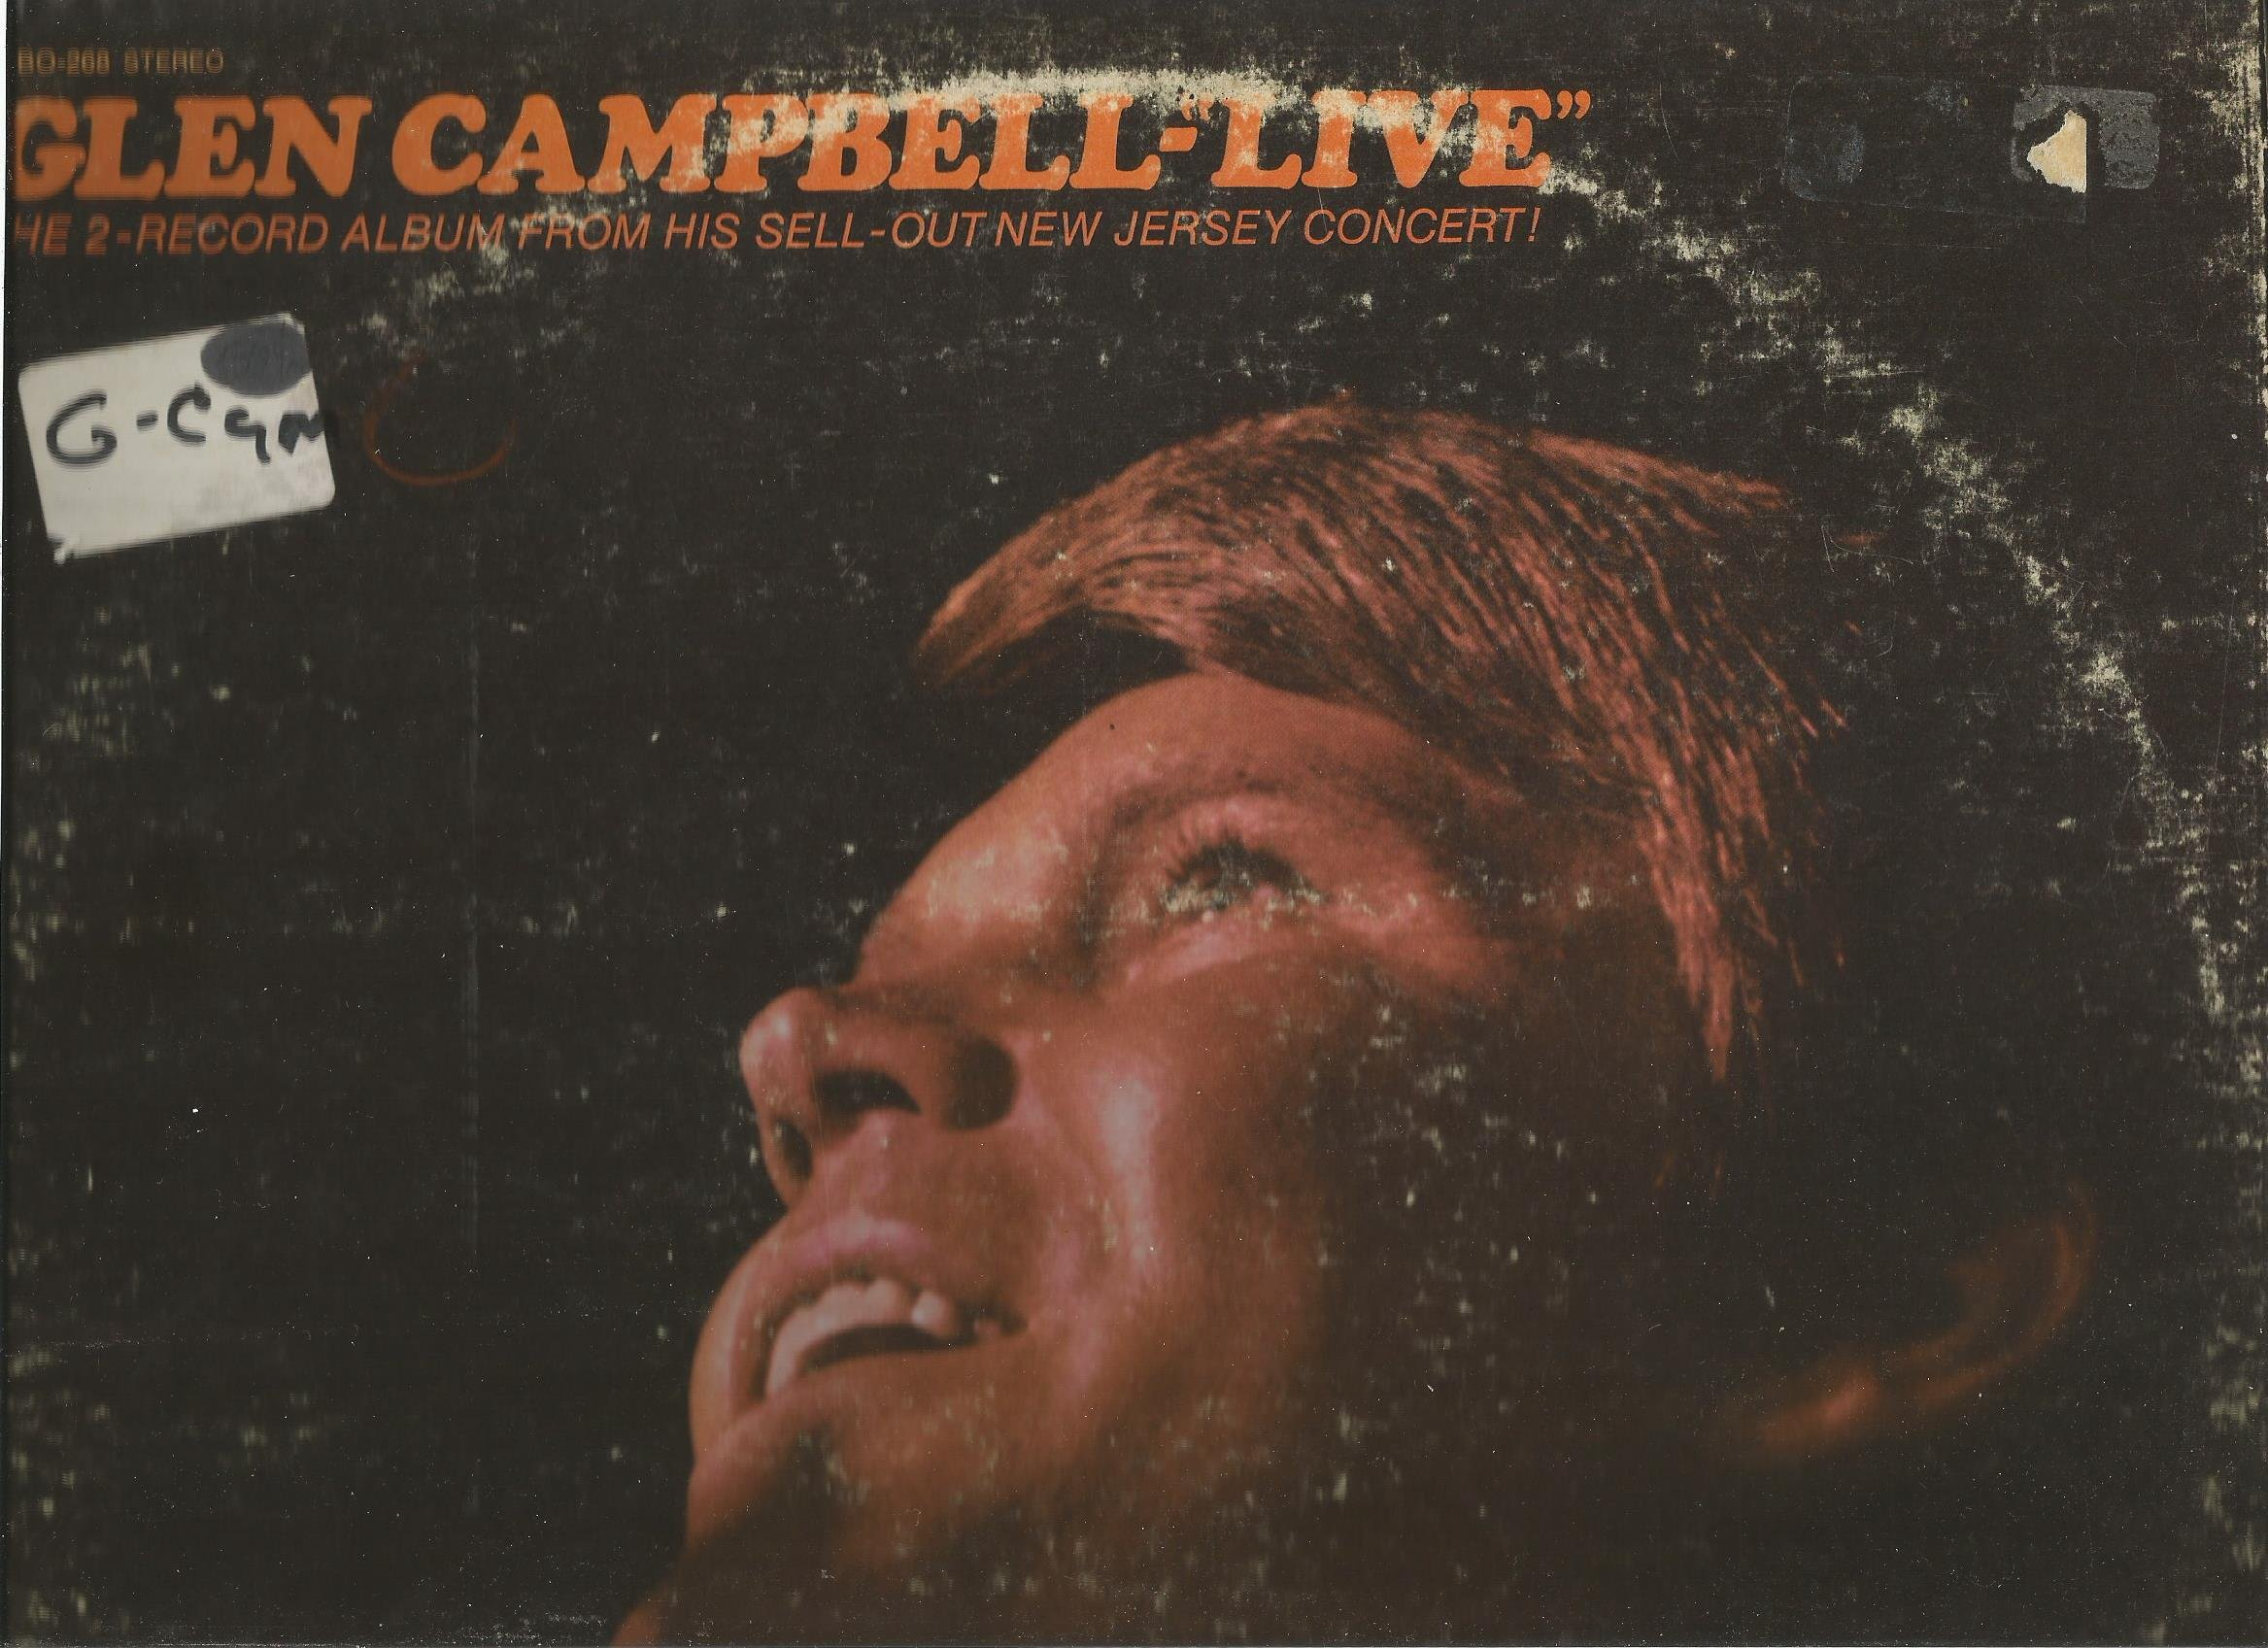 Glen Campbell Live by Capitol